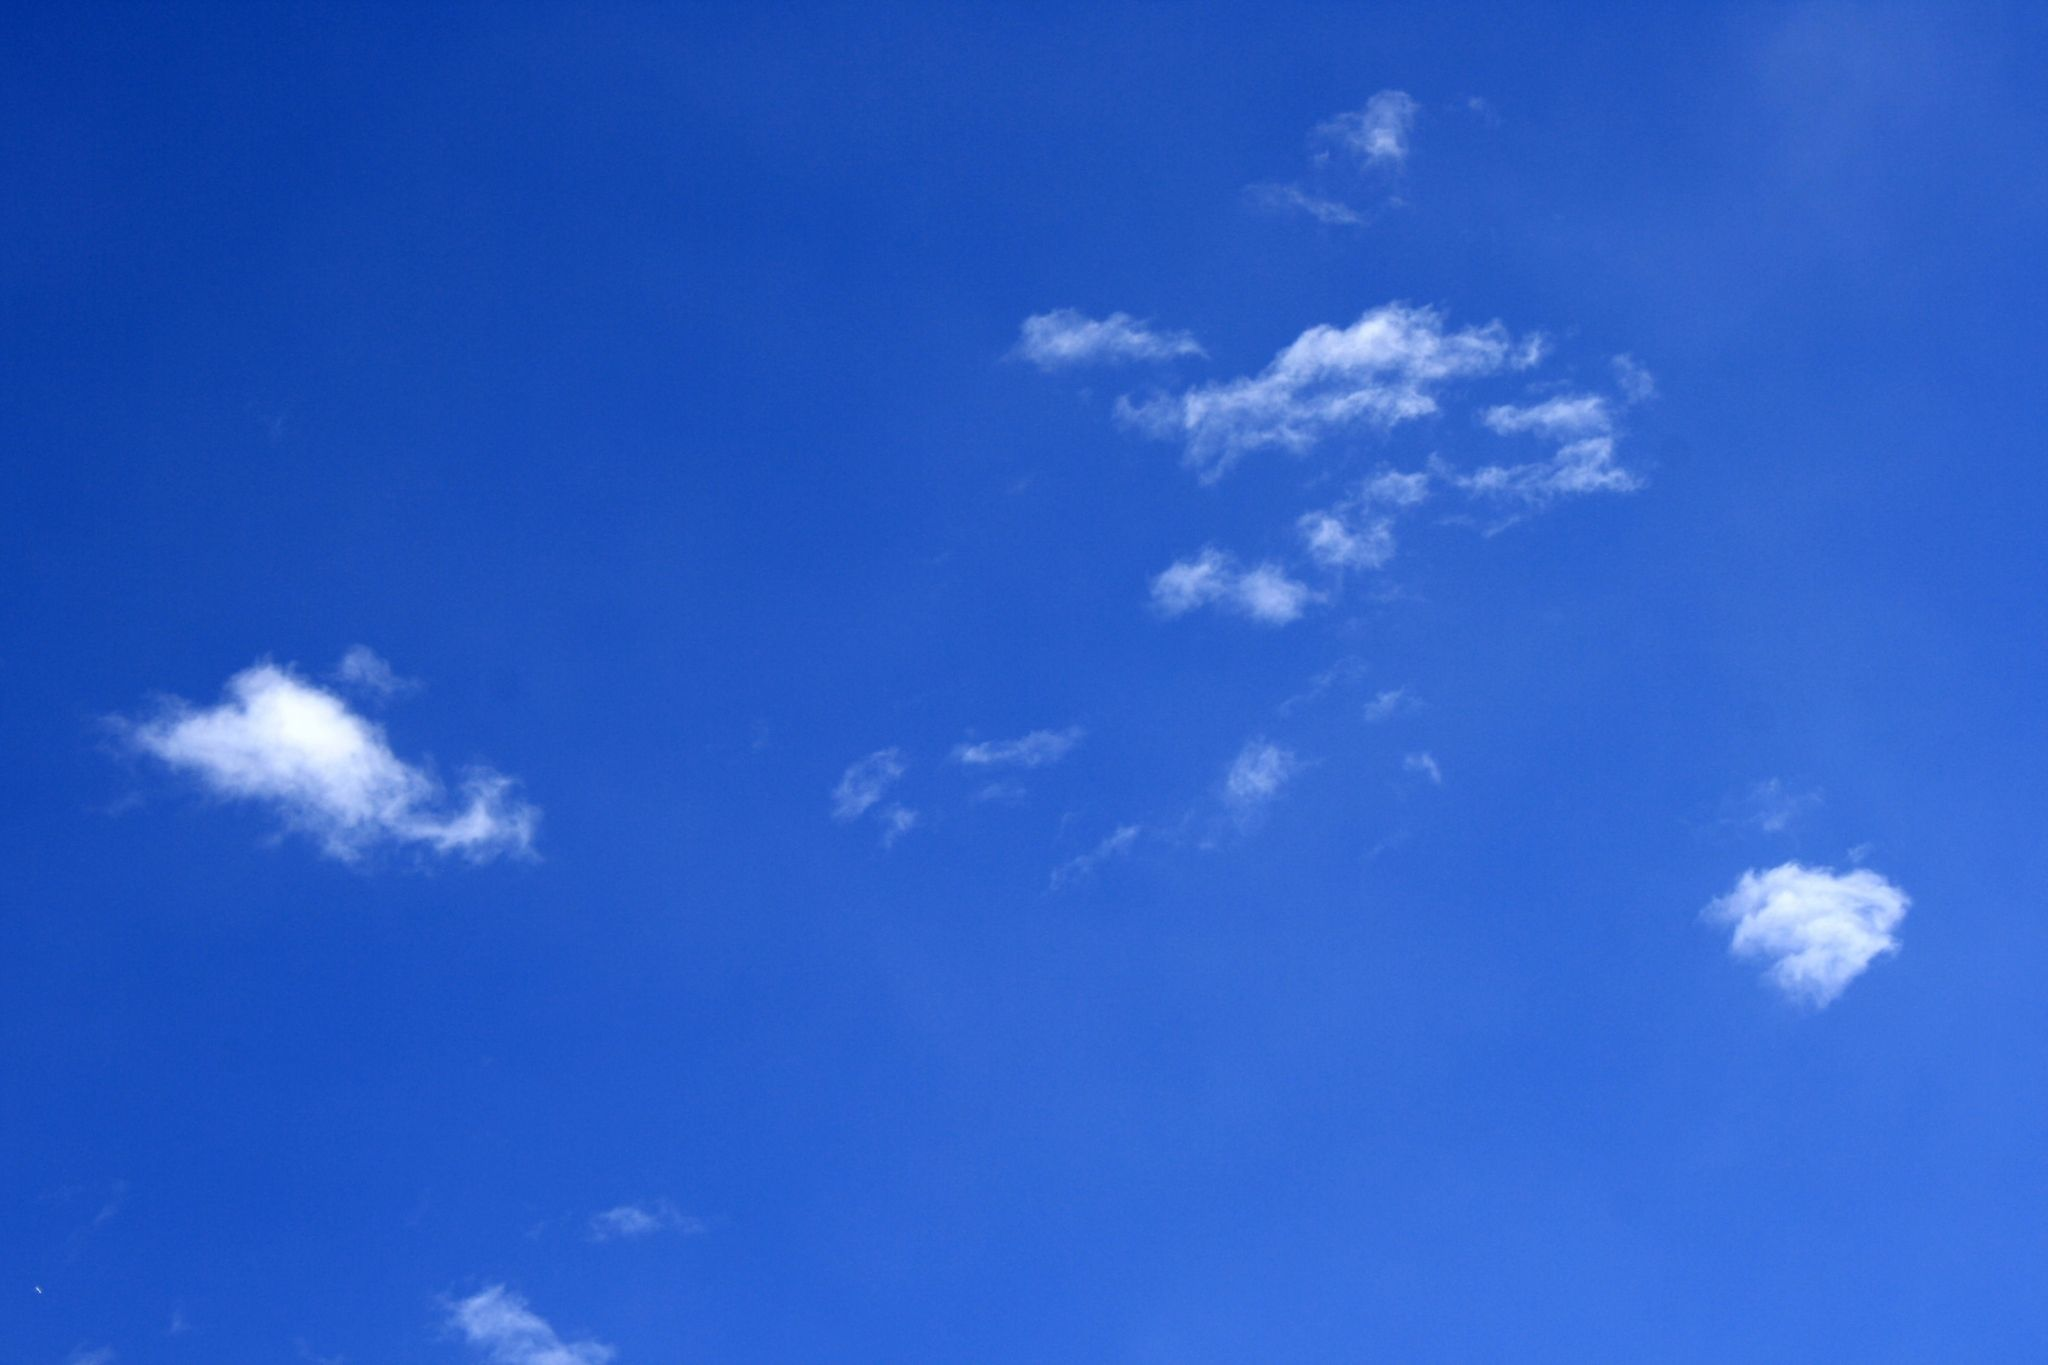 sky hd wallpapers 1080p high quality Sky images, Clear